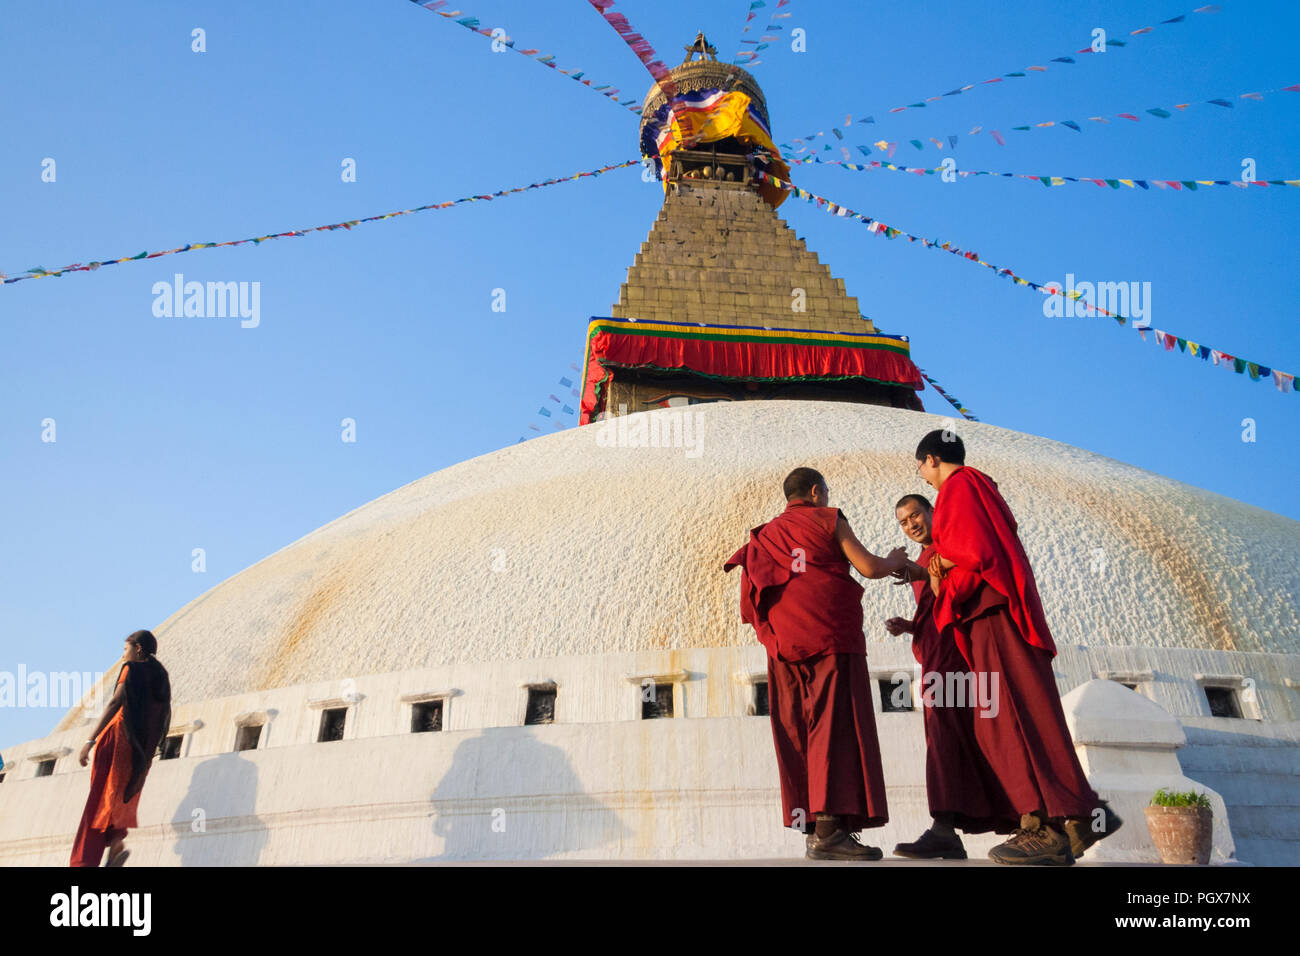 Bodhnath , Kathmandu, Bagmati, Nepal : Buddhist monks in maroon robes walk around the Great stupa of Bodhnath, the largest in Asia and one of the larg - Stock Image